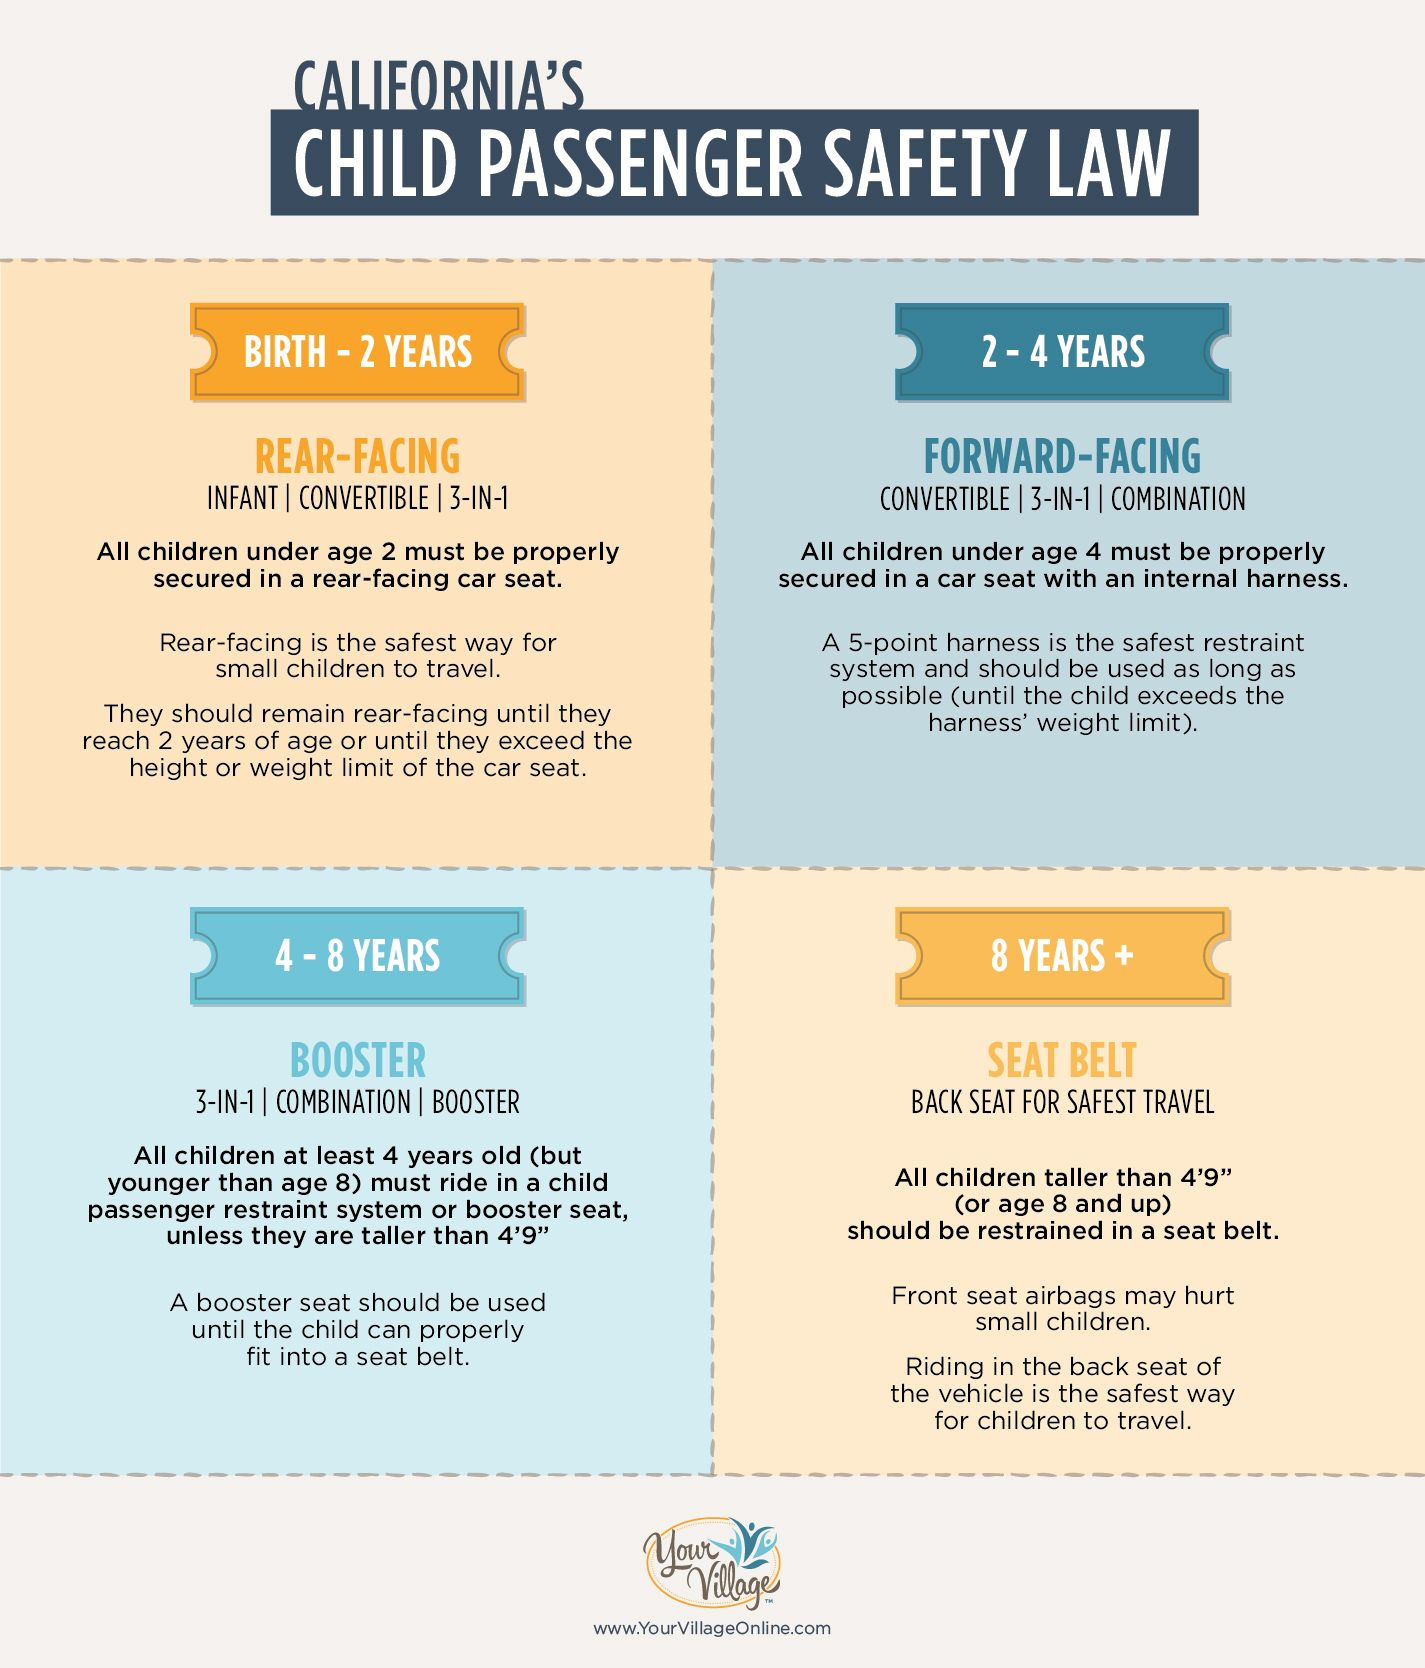 New California Car Seat Safety Laws for 2017 Child